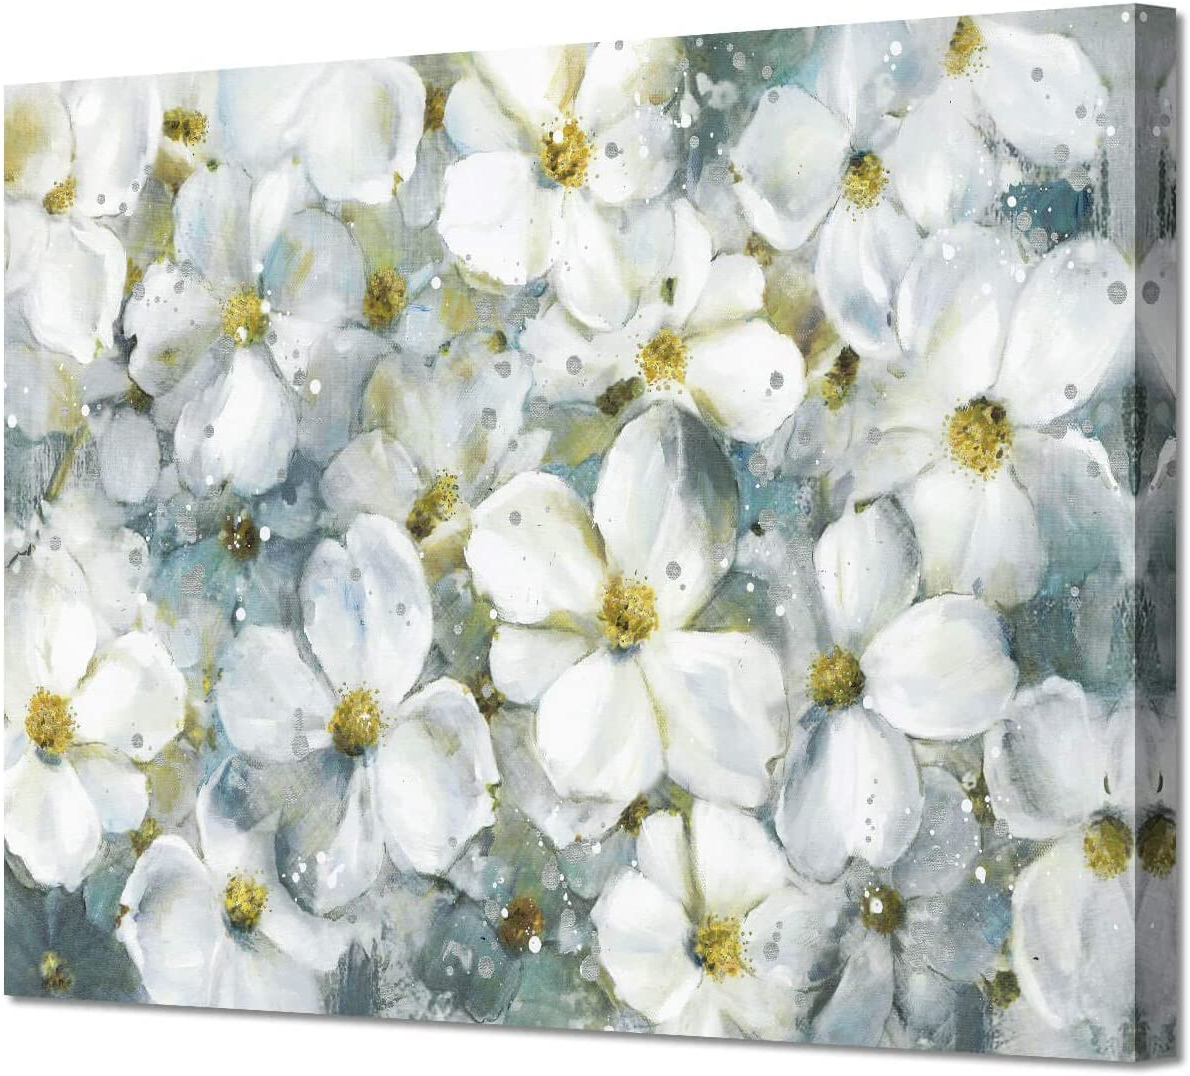 Well Known Blended Fabric Fruity Bouquets Wall Hangings Within Abstract Flower Wall Art Picture: White Floral Artwork Painting On Canvas For Living Room (36''w X 24''h,multi Sized) (View 7 of 20)